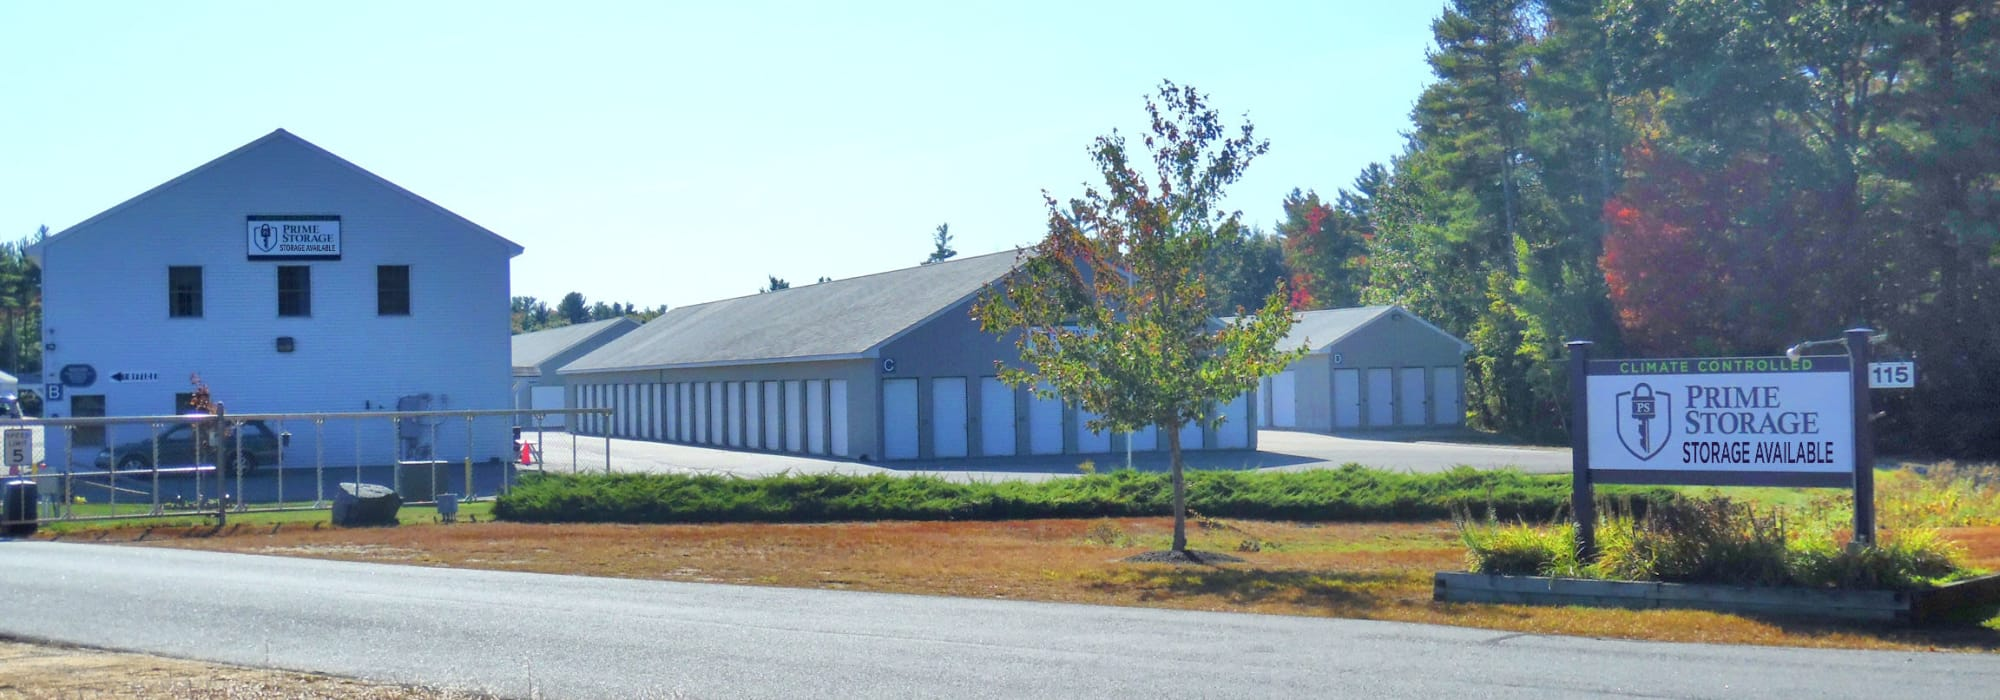 Prime Storage in Somersworth, NH